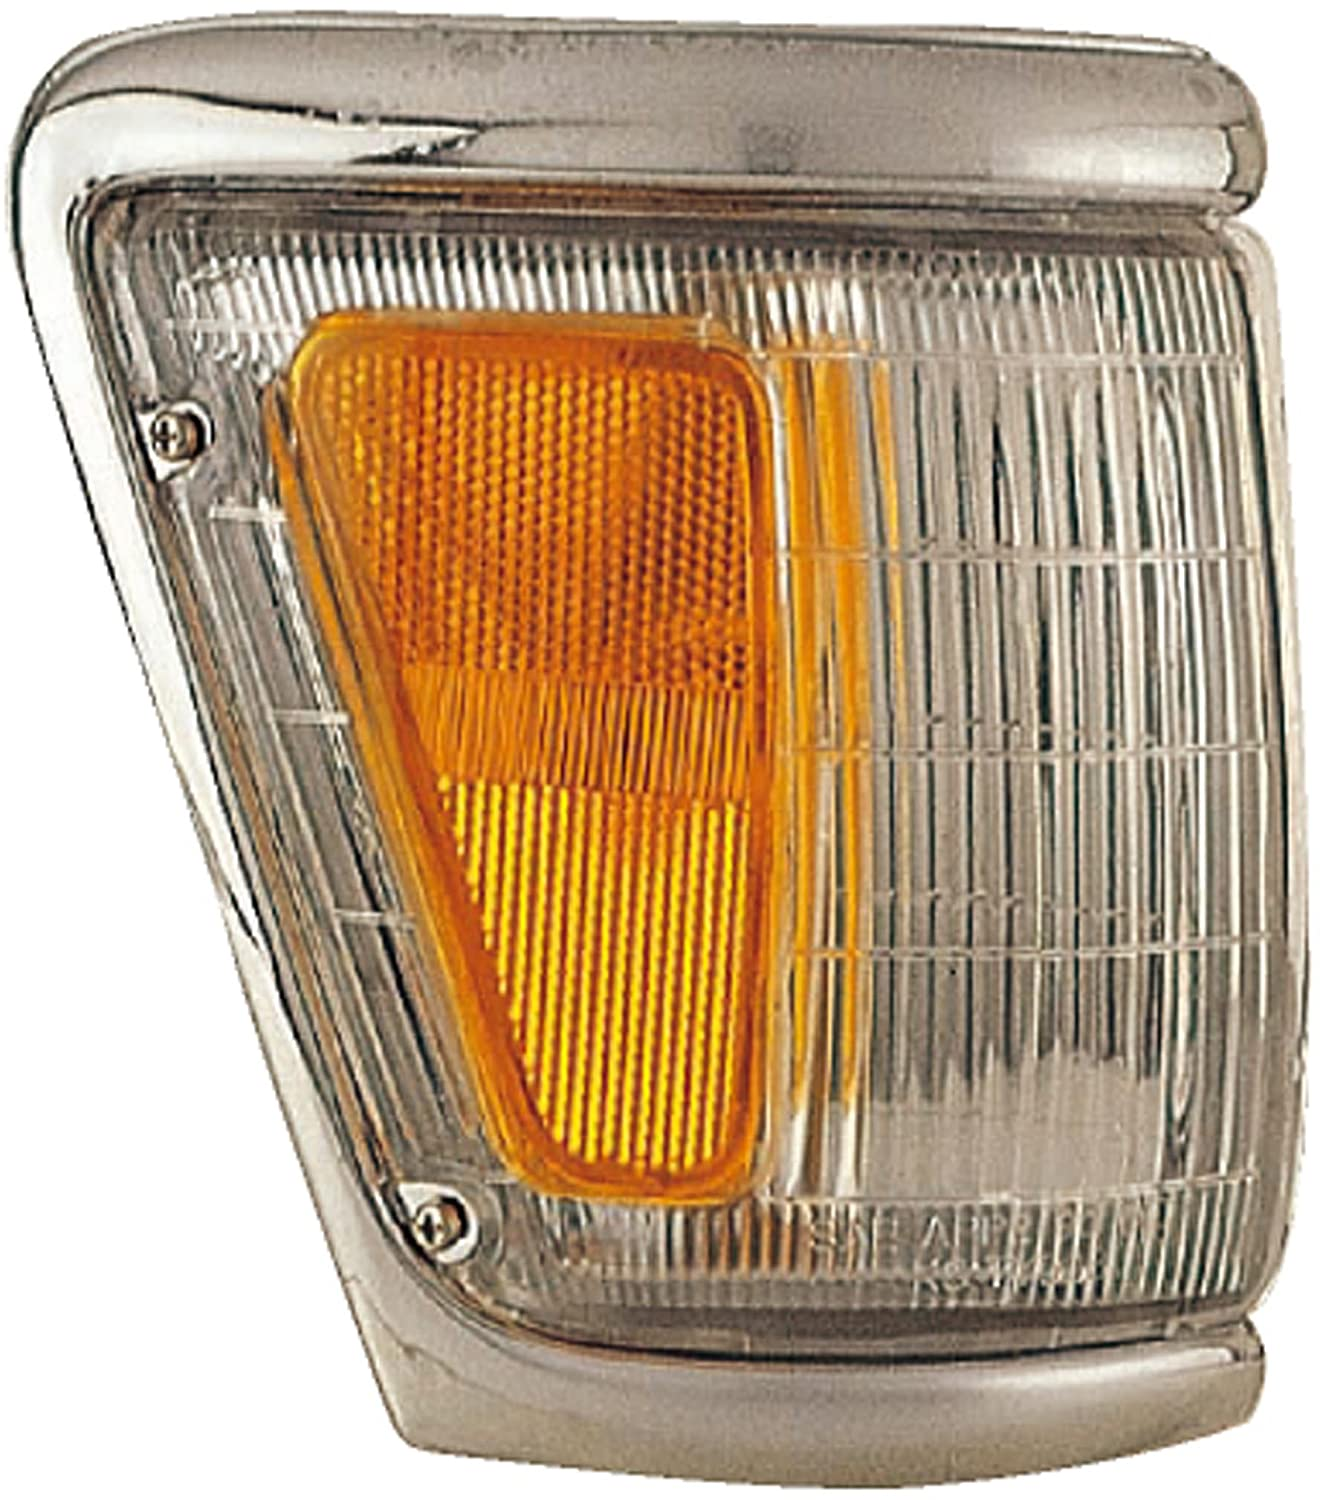 Dorman 1630685 Toyota Pickup Front Passenger Side Parking/Turn Signal Light Assembly